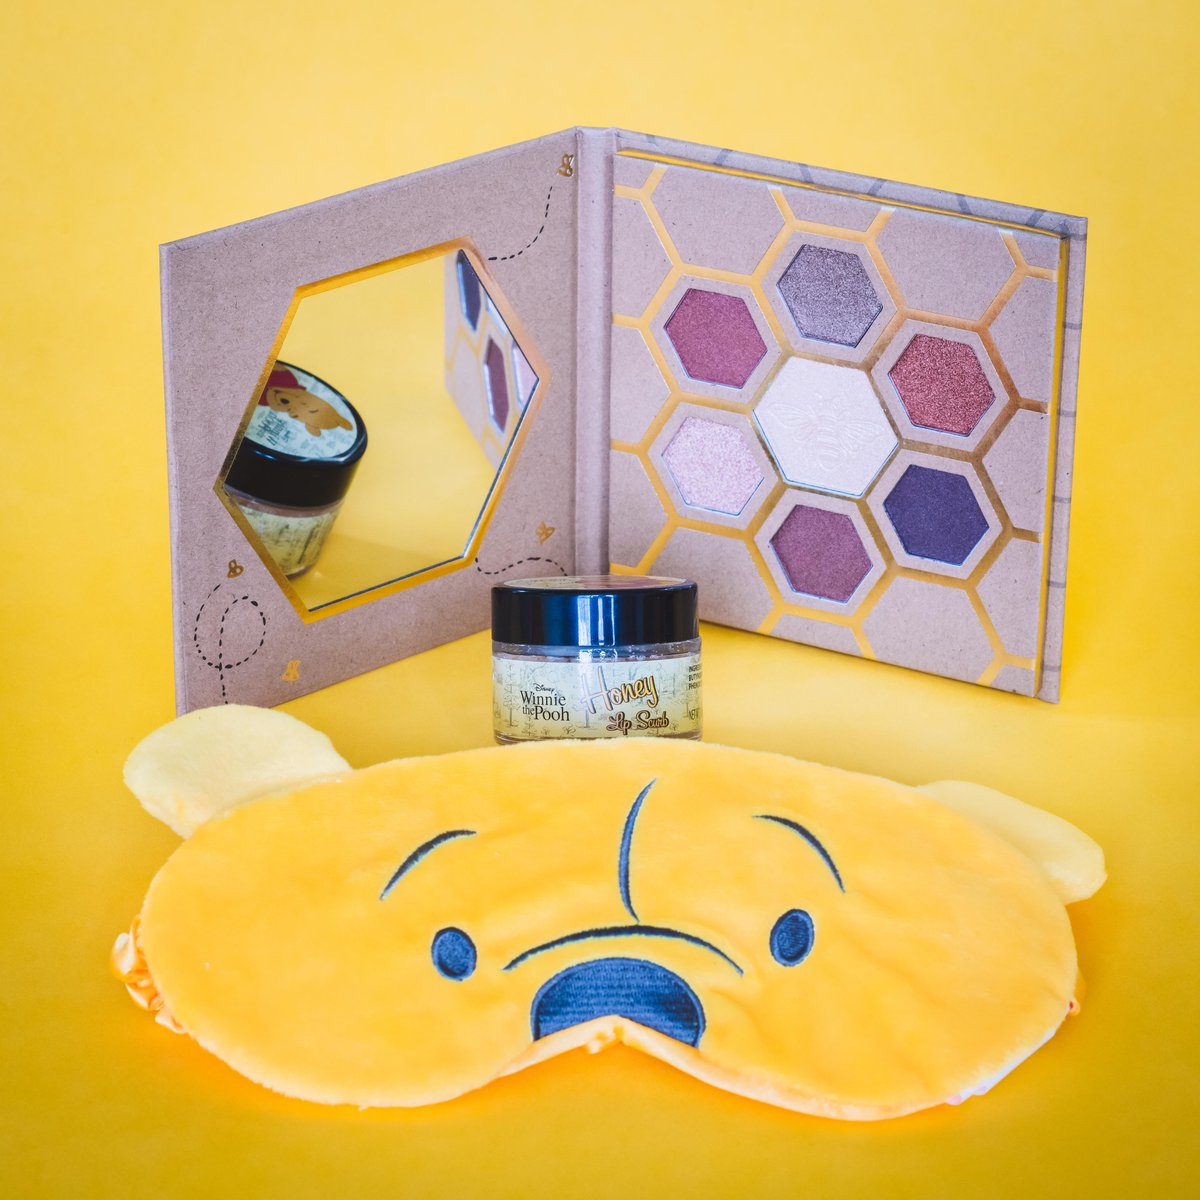 Ready to create a look that's as sweet as hunny? 🍯Shop Winnie the Pooh beauty accessories: bit.ly/2UmFVYj.